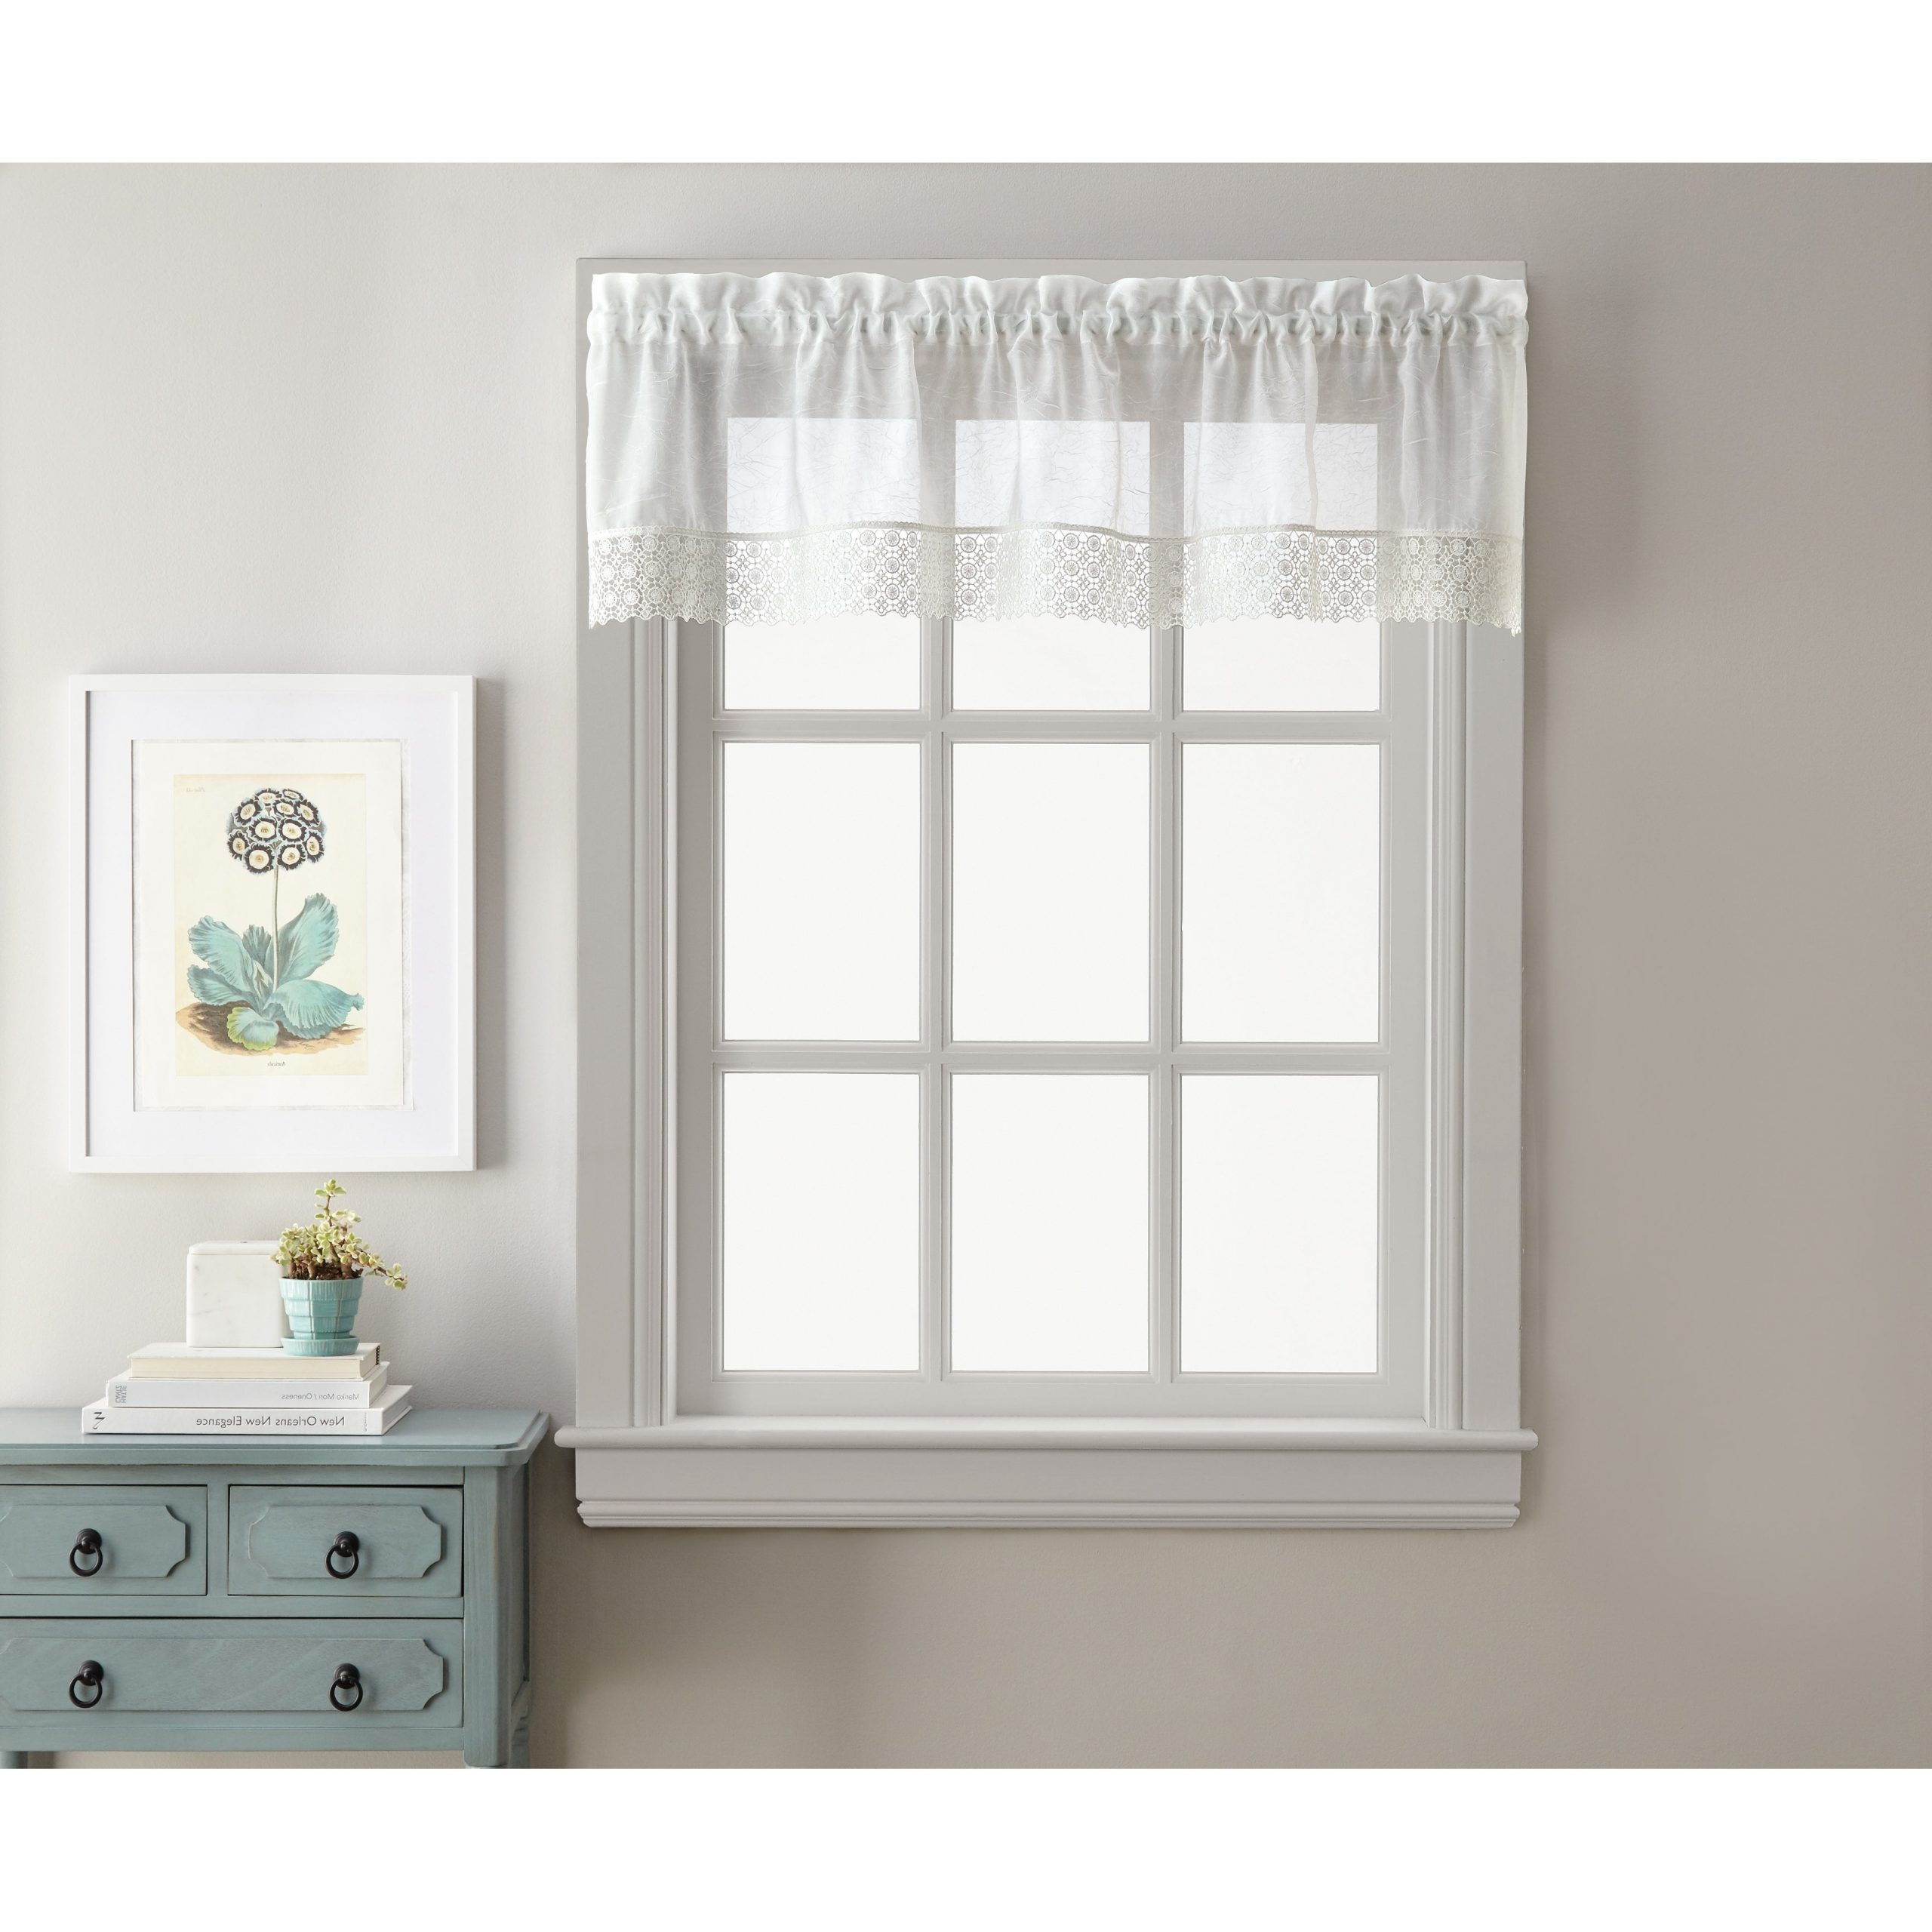 Popular Sweet Adele White Tailored Valance And Tier Pair Curtain Collection Regarding Touch Of Spring 24 Inch Tier Pairs (View 11 of 20)